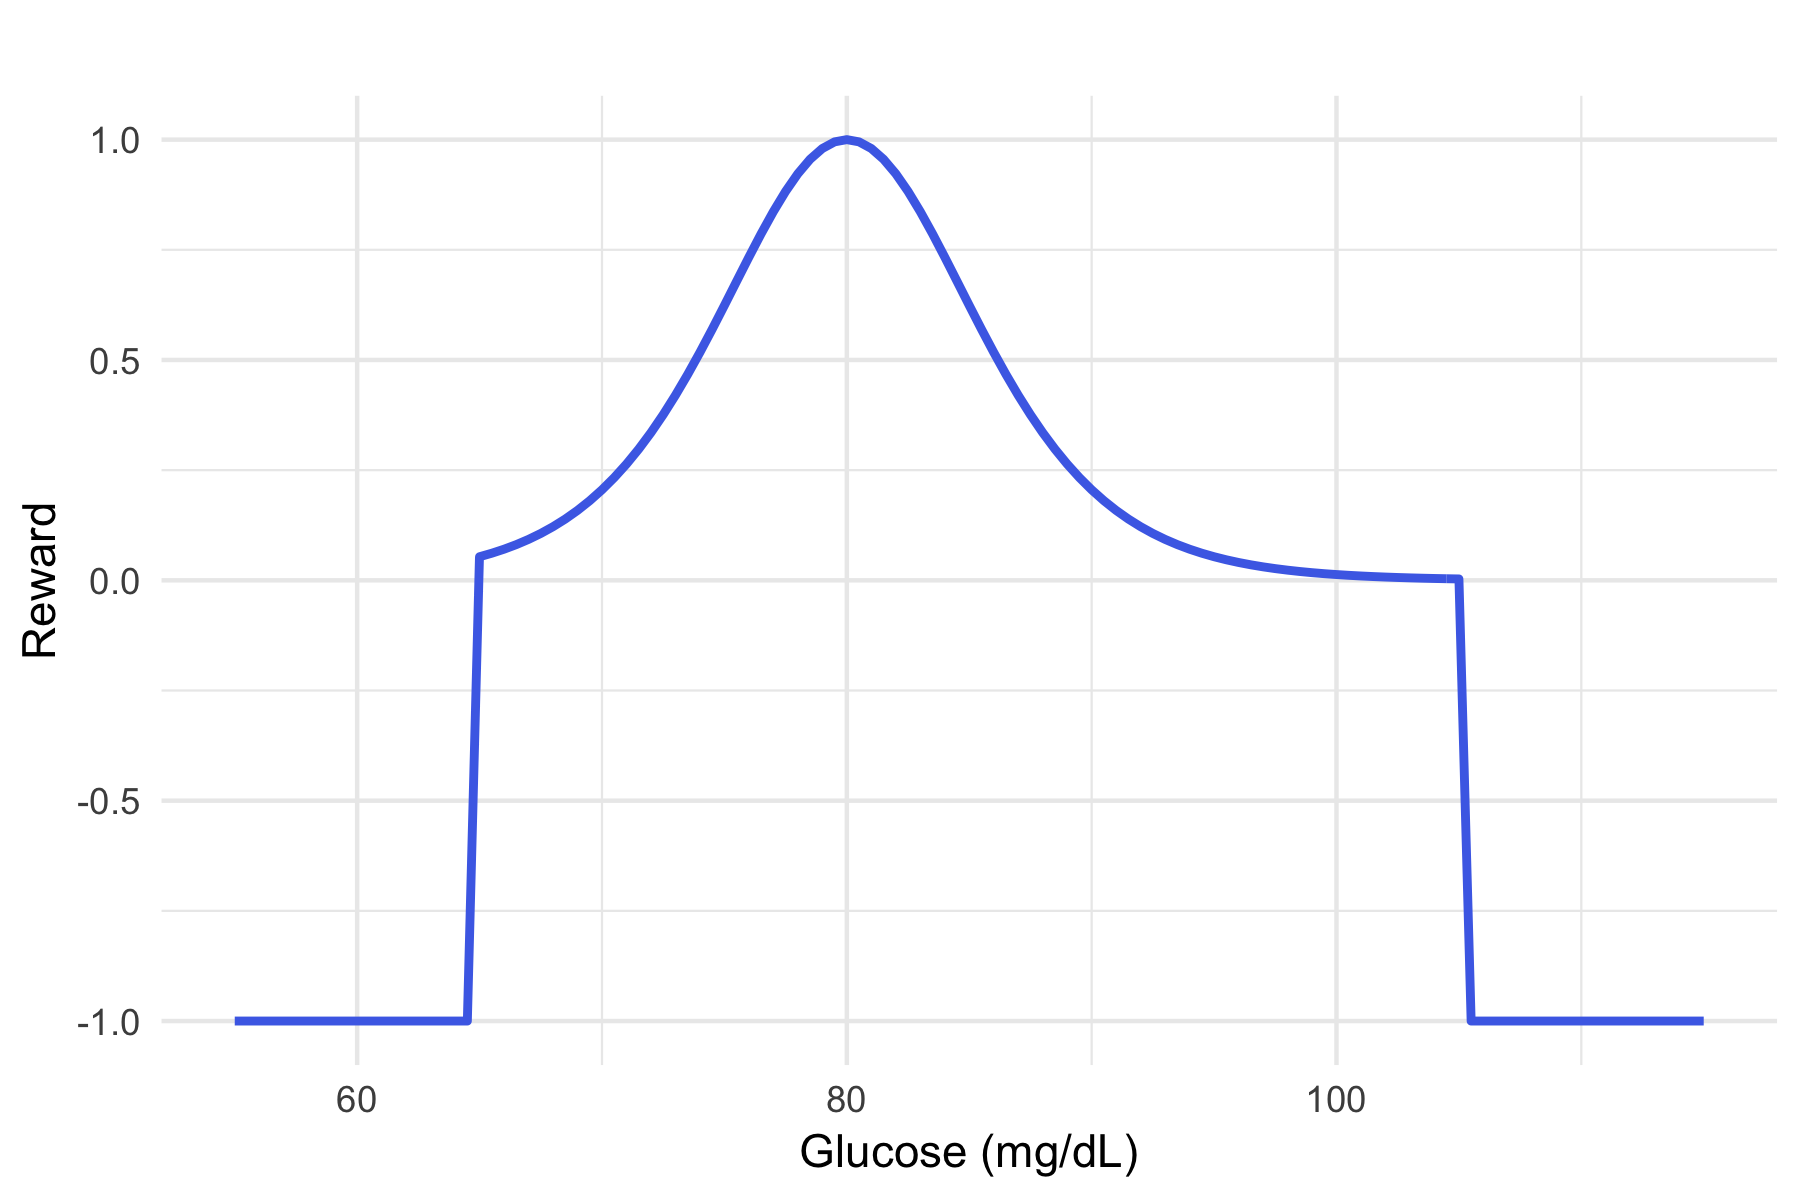 Figure 2. The reward function is based on how close an individual's blood glucose levels are to target values. Divergence from this target is penalized.